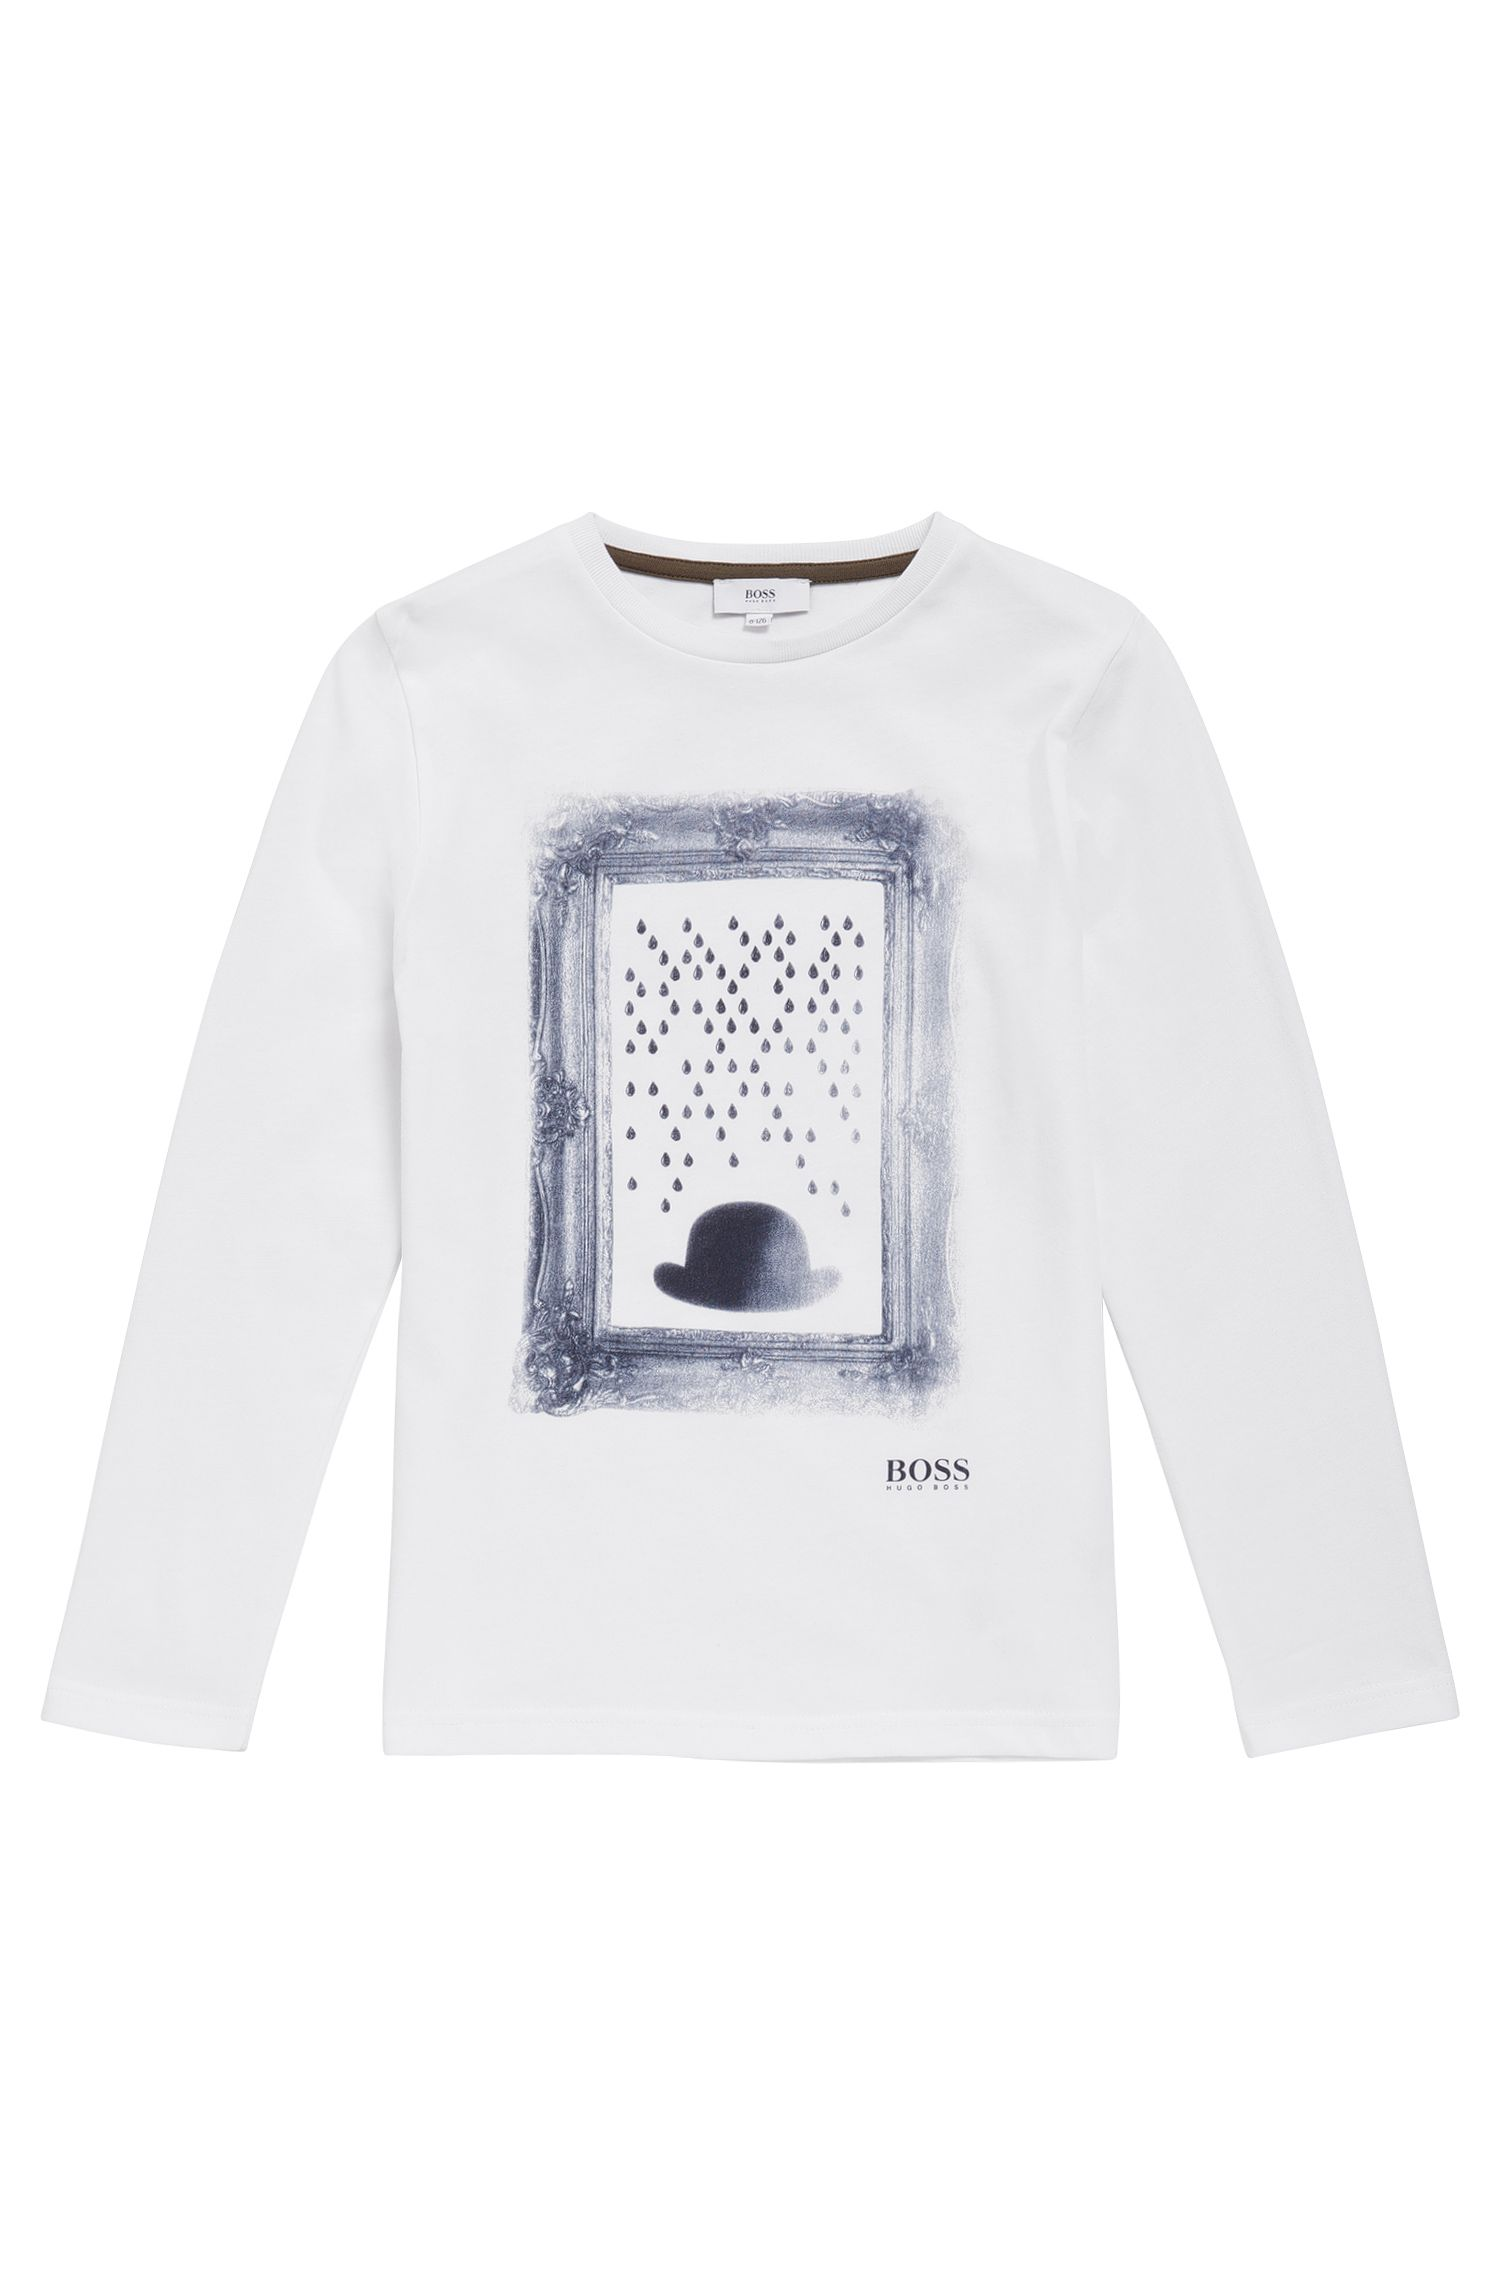 Kids' long-sleeved printed shirt in cotton: 'J25A05'